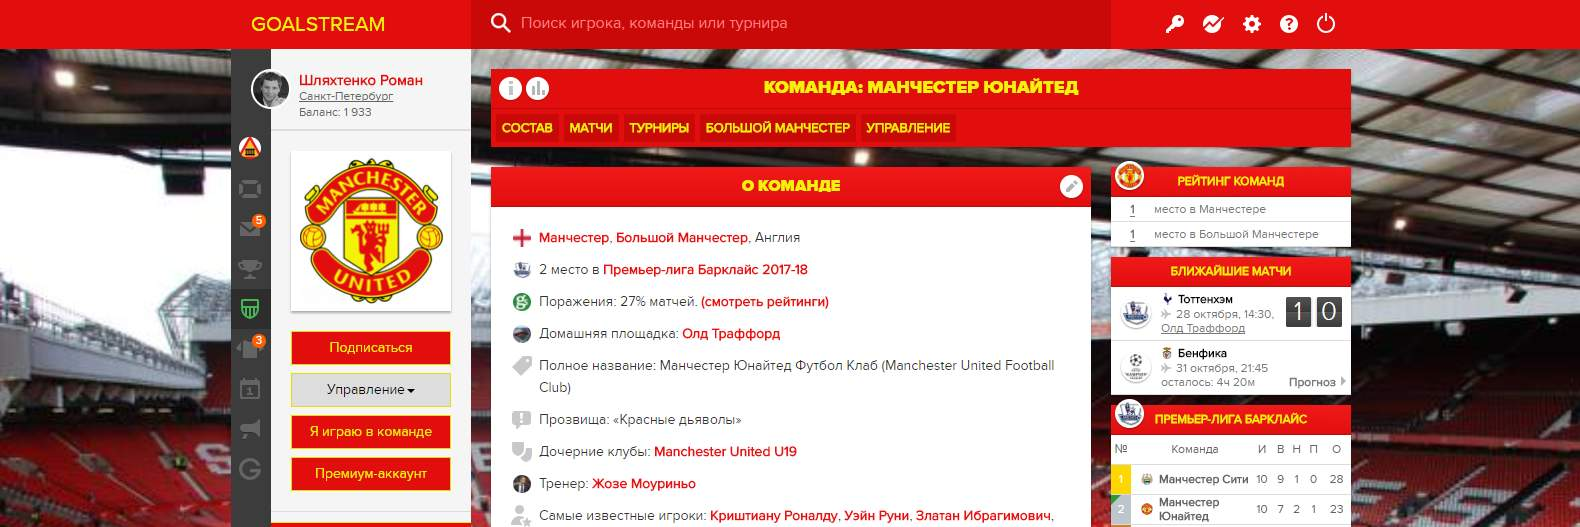 Internet clubs in the Kherson region: a selection of sites